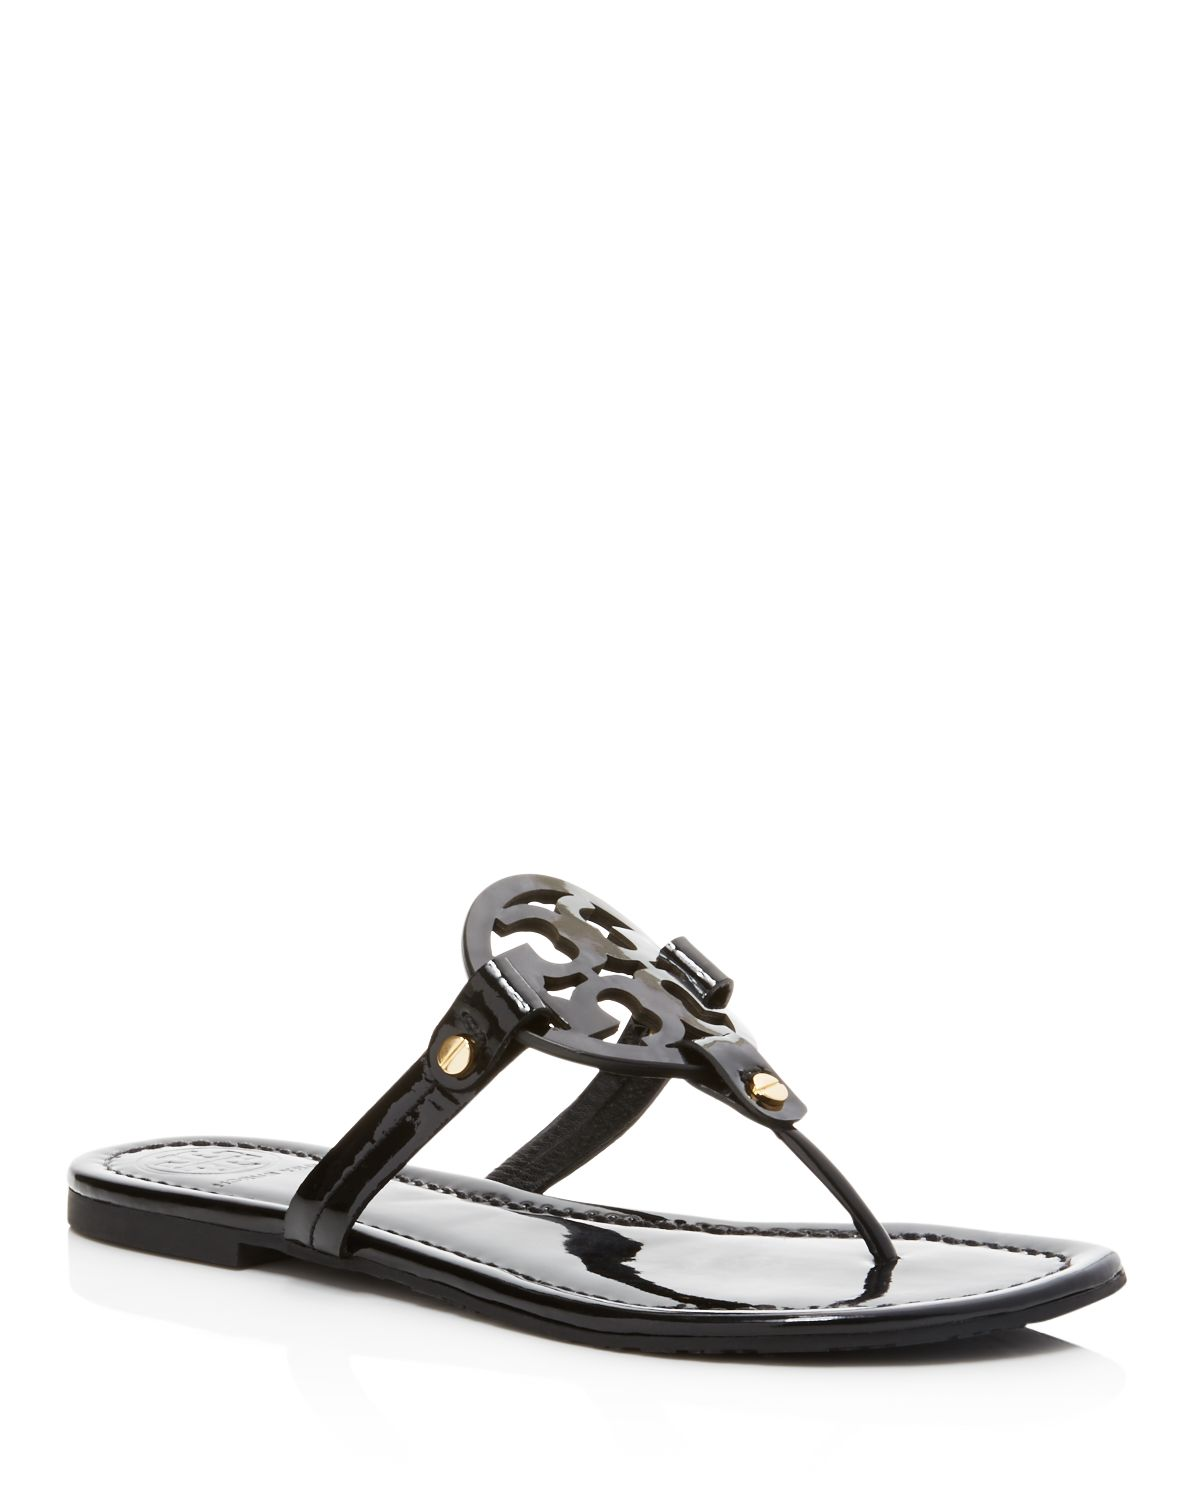 Tory Burch Woman Embellished Leather Sandals Black Size 11 Tory Burch